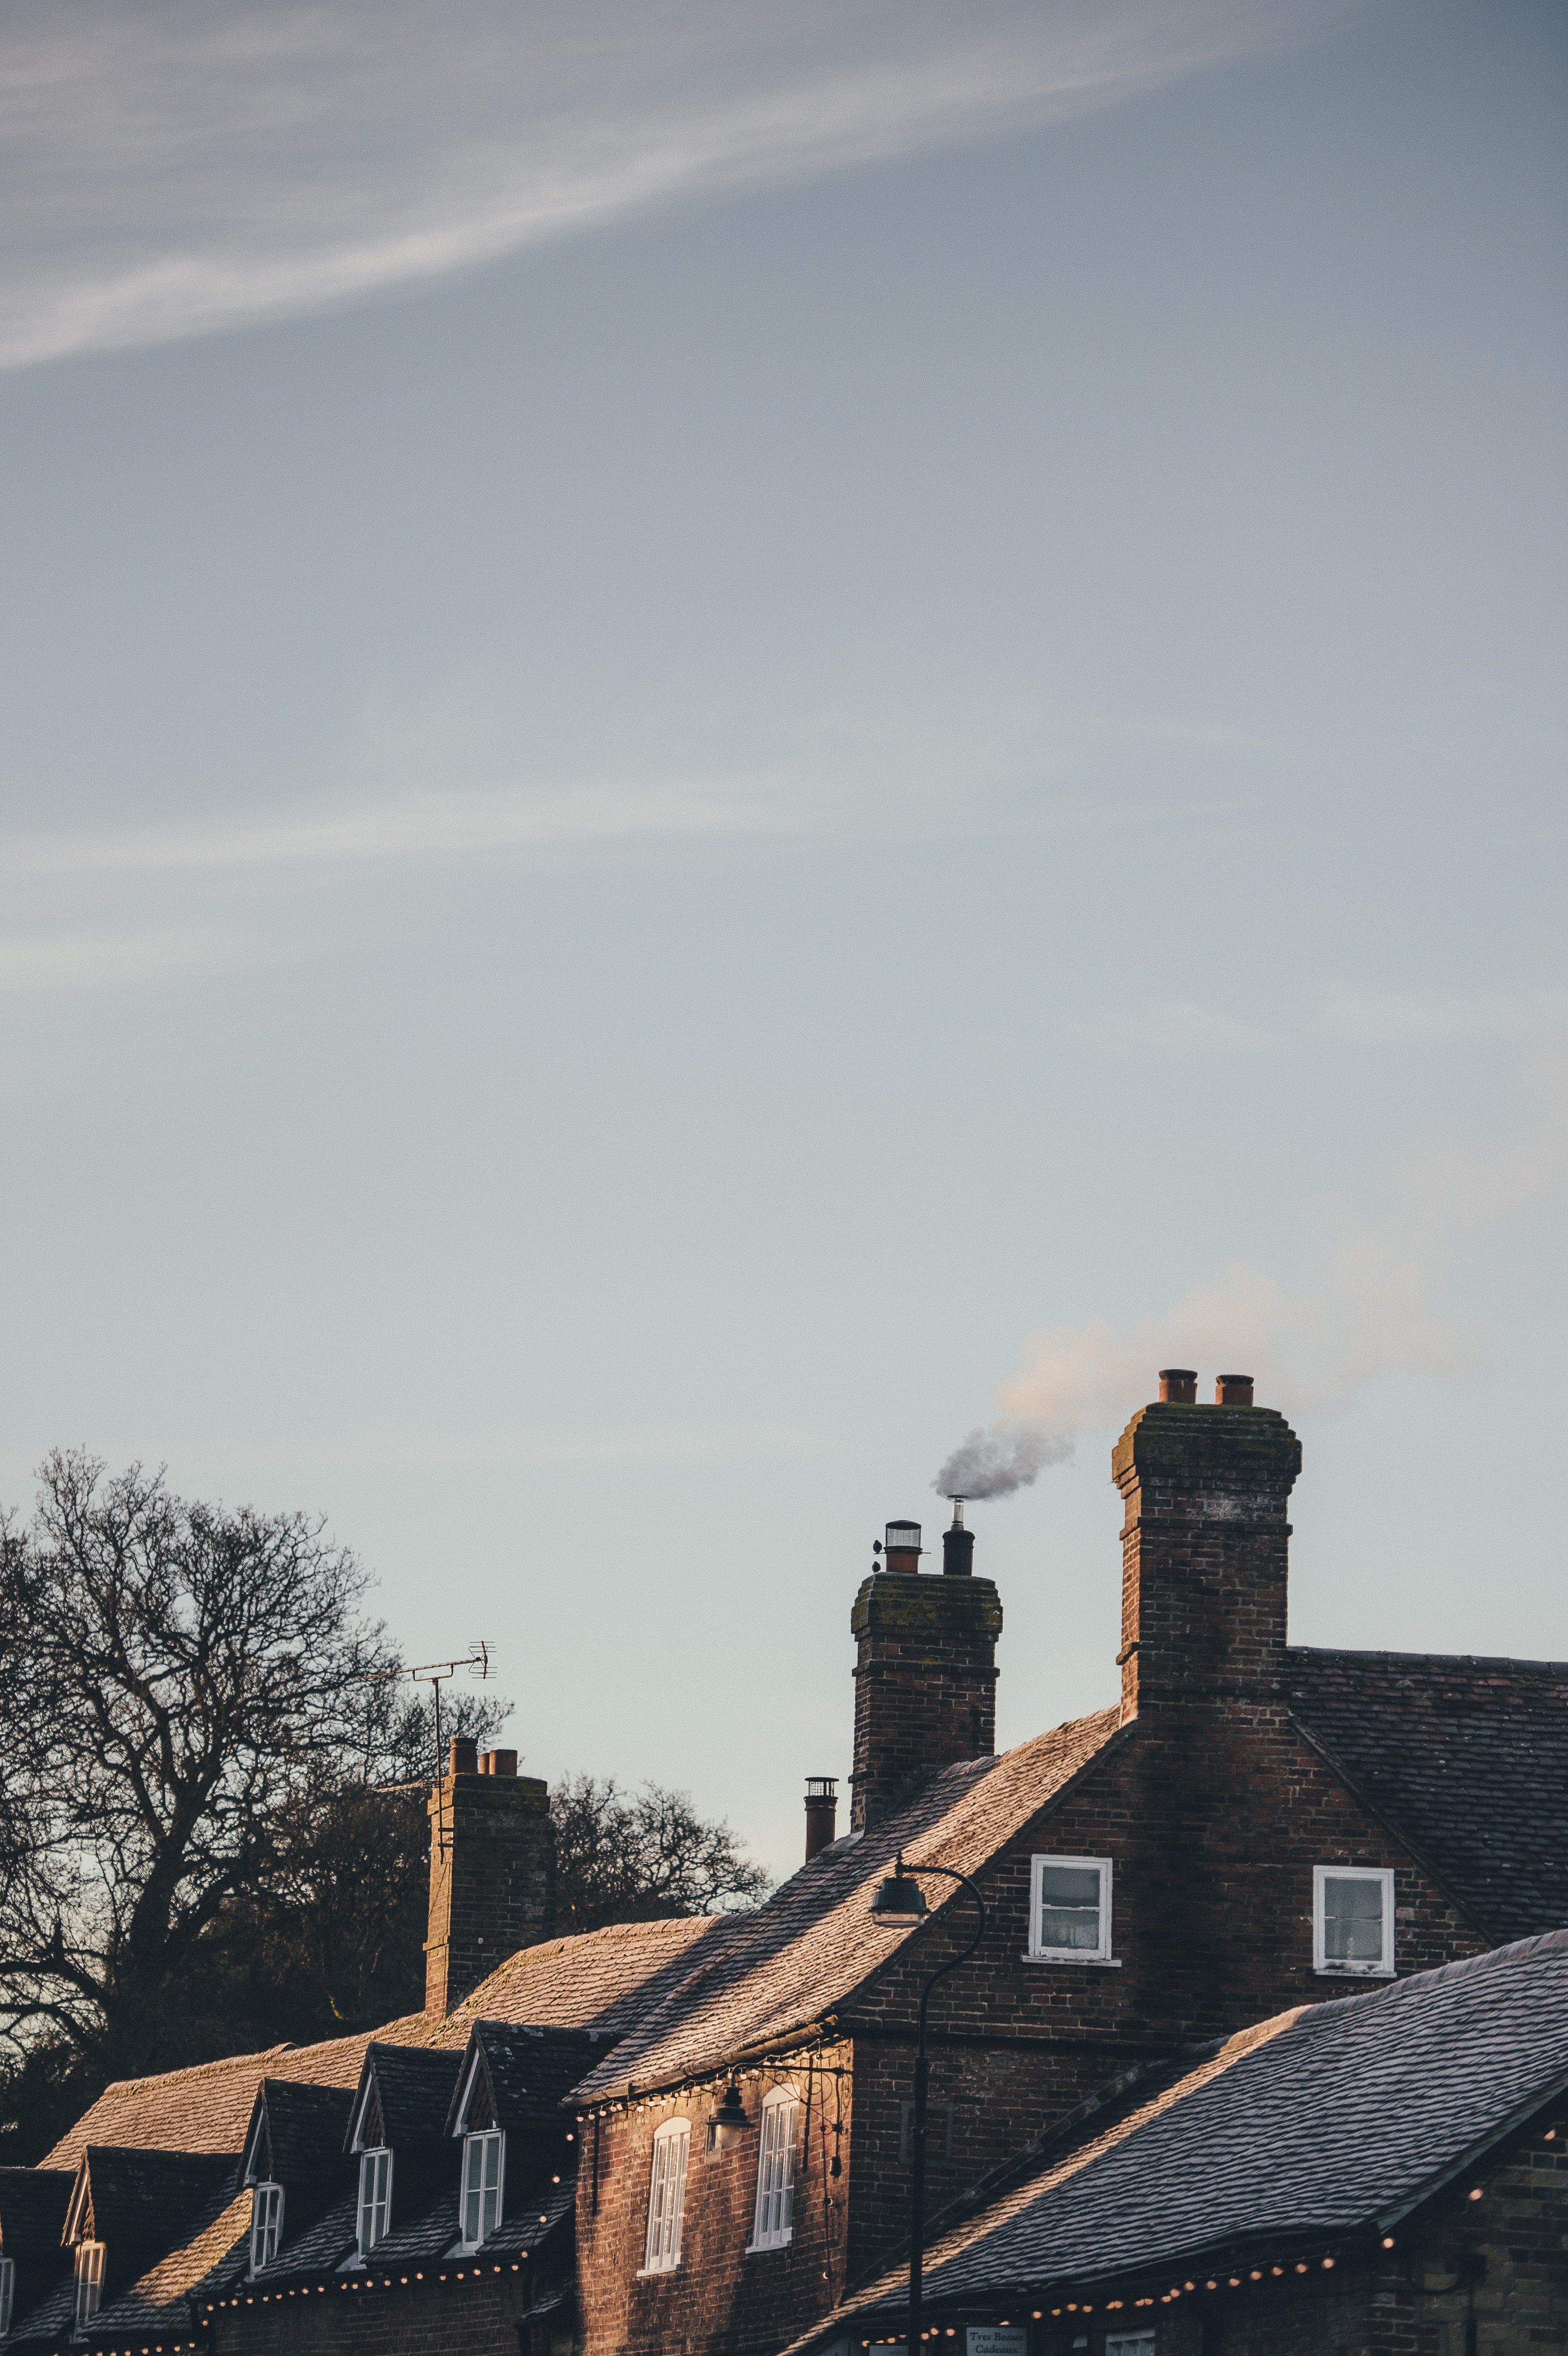 house with chimney smoke